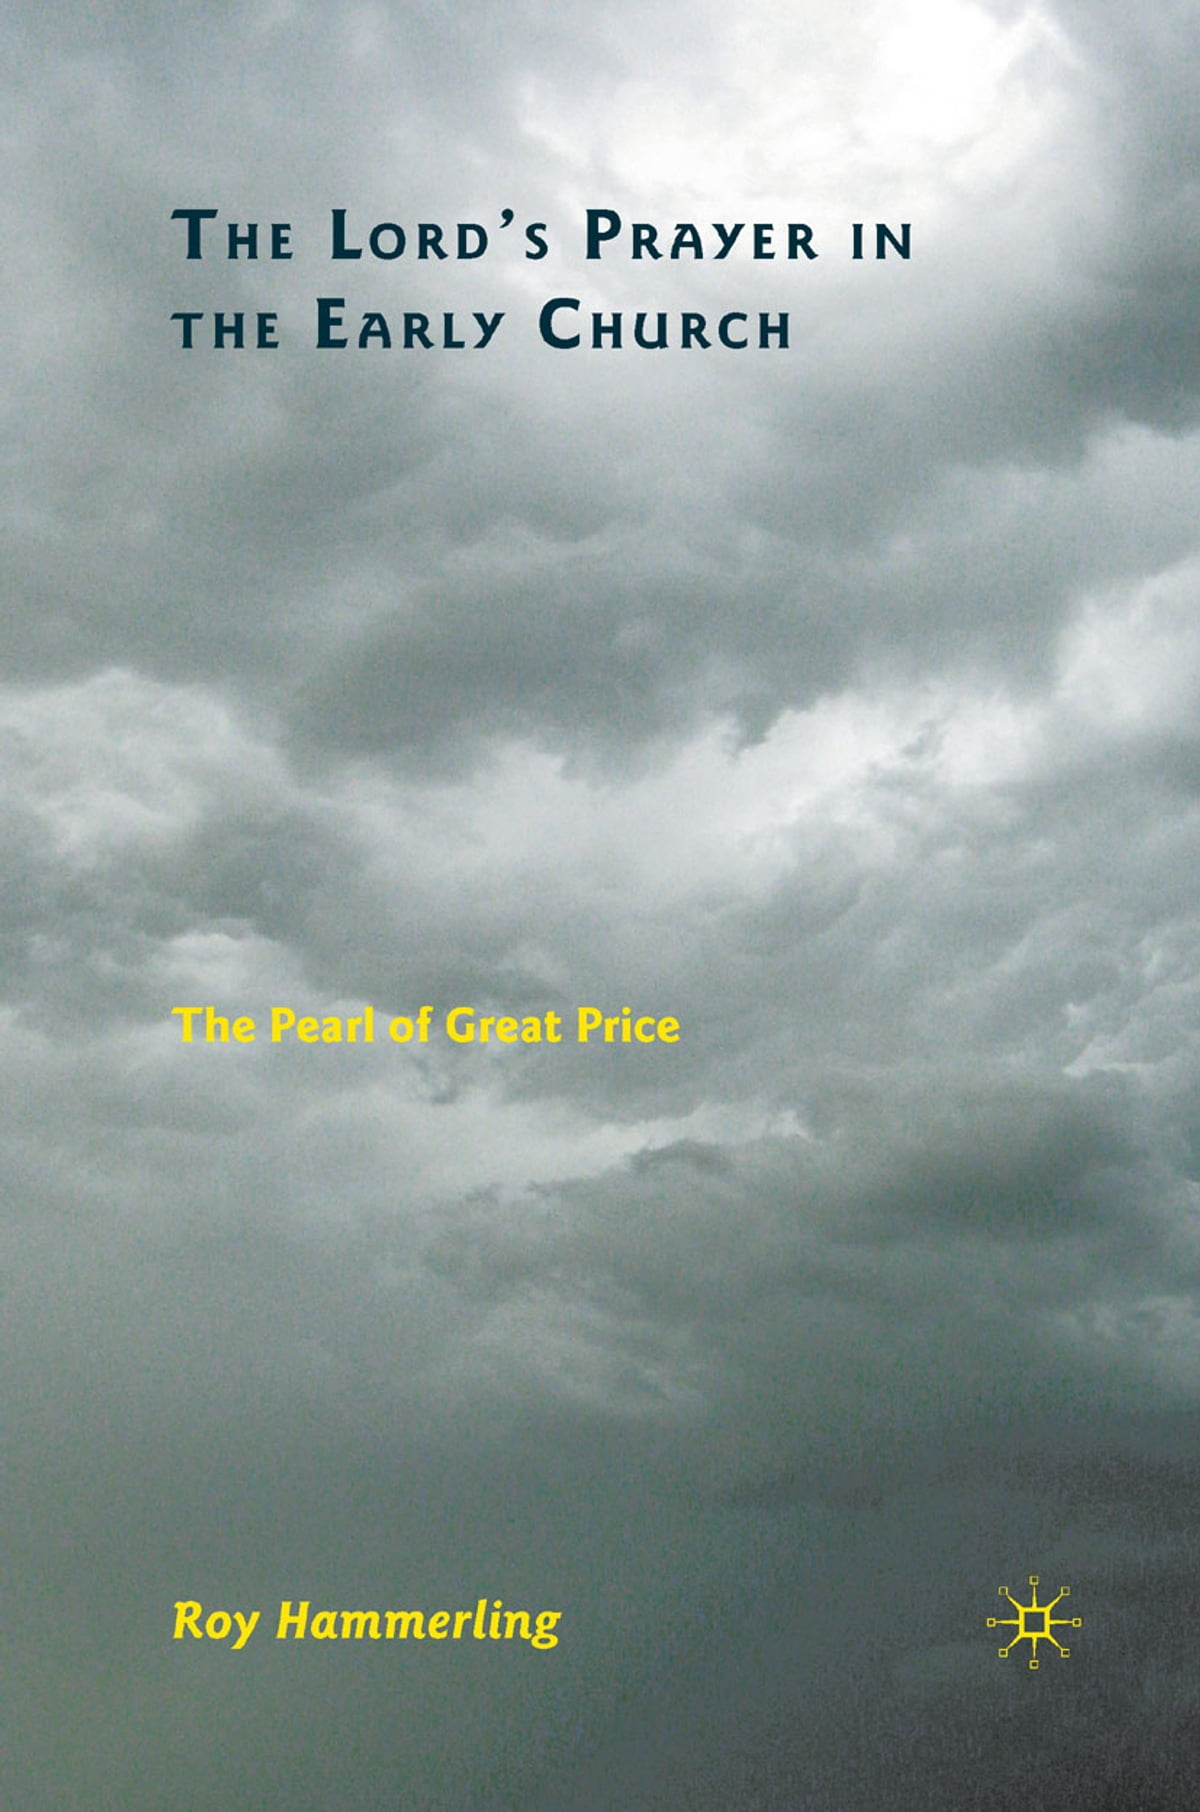 The Lord's Prayer in the Early Church eBook by R. Hammerling -  9780230113084 | Rakuten Kobo